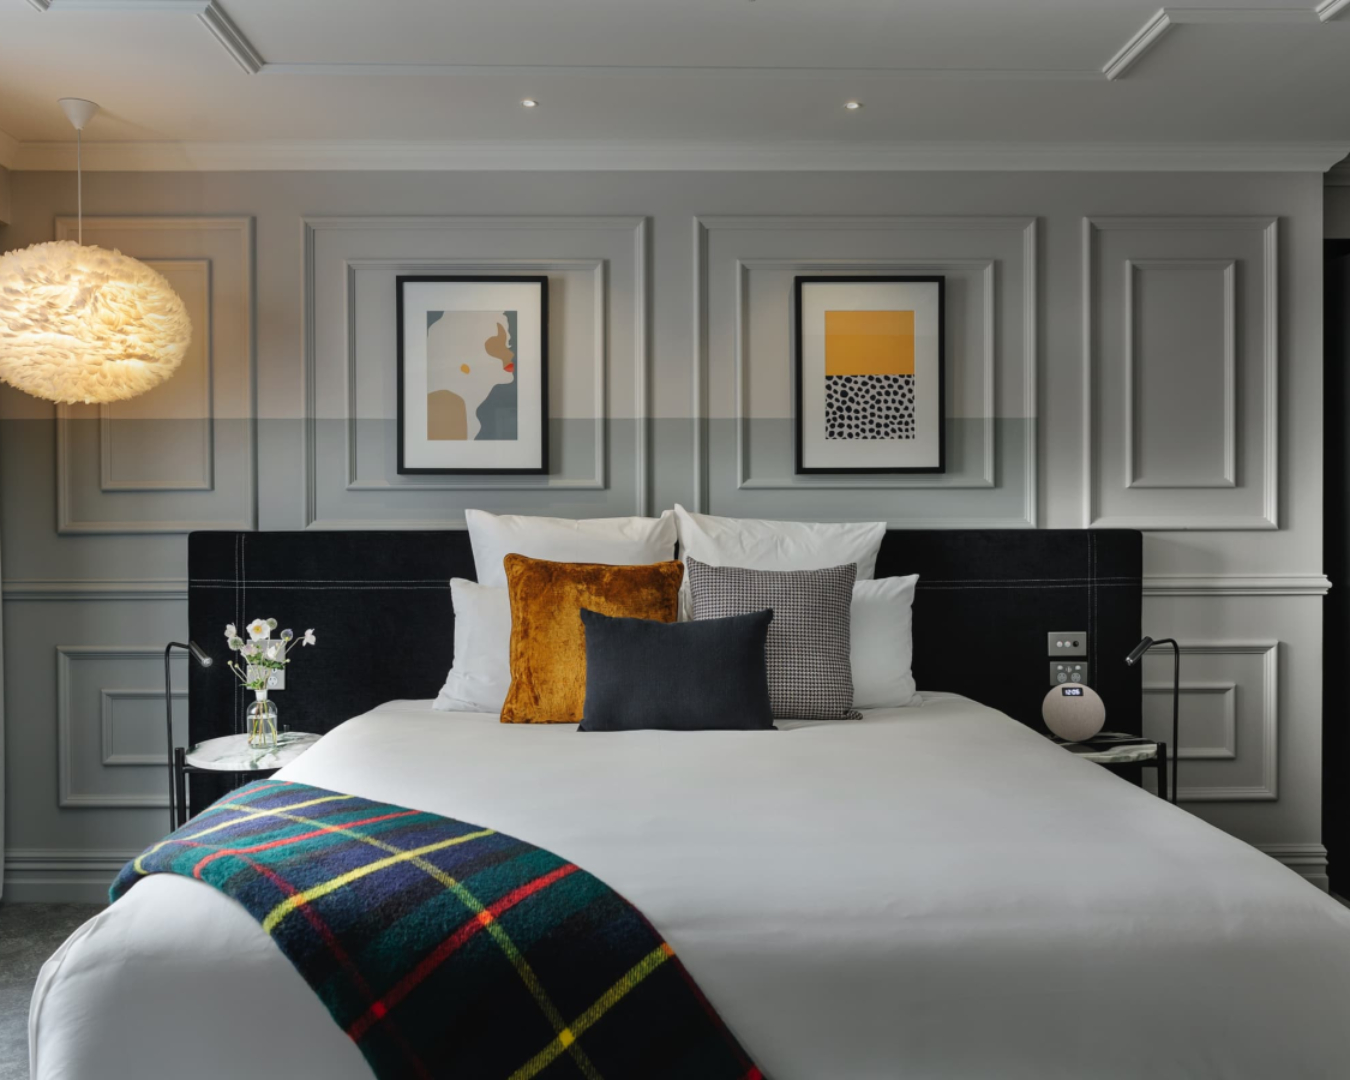 An elegant guest suite at the Fable hotel in Dunedin, featuring a plush bed with a tartan throw